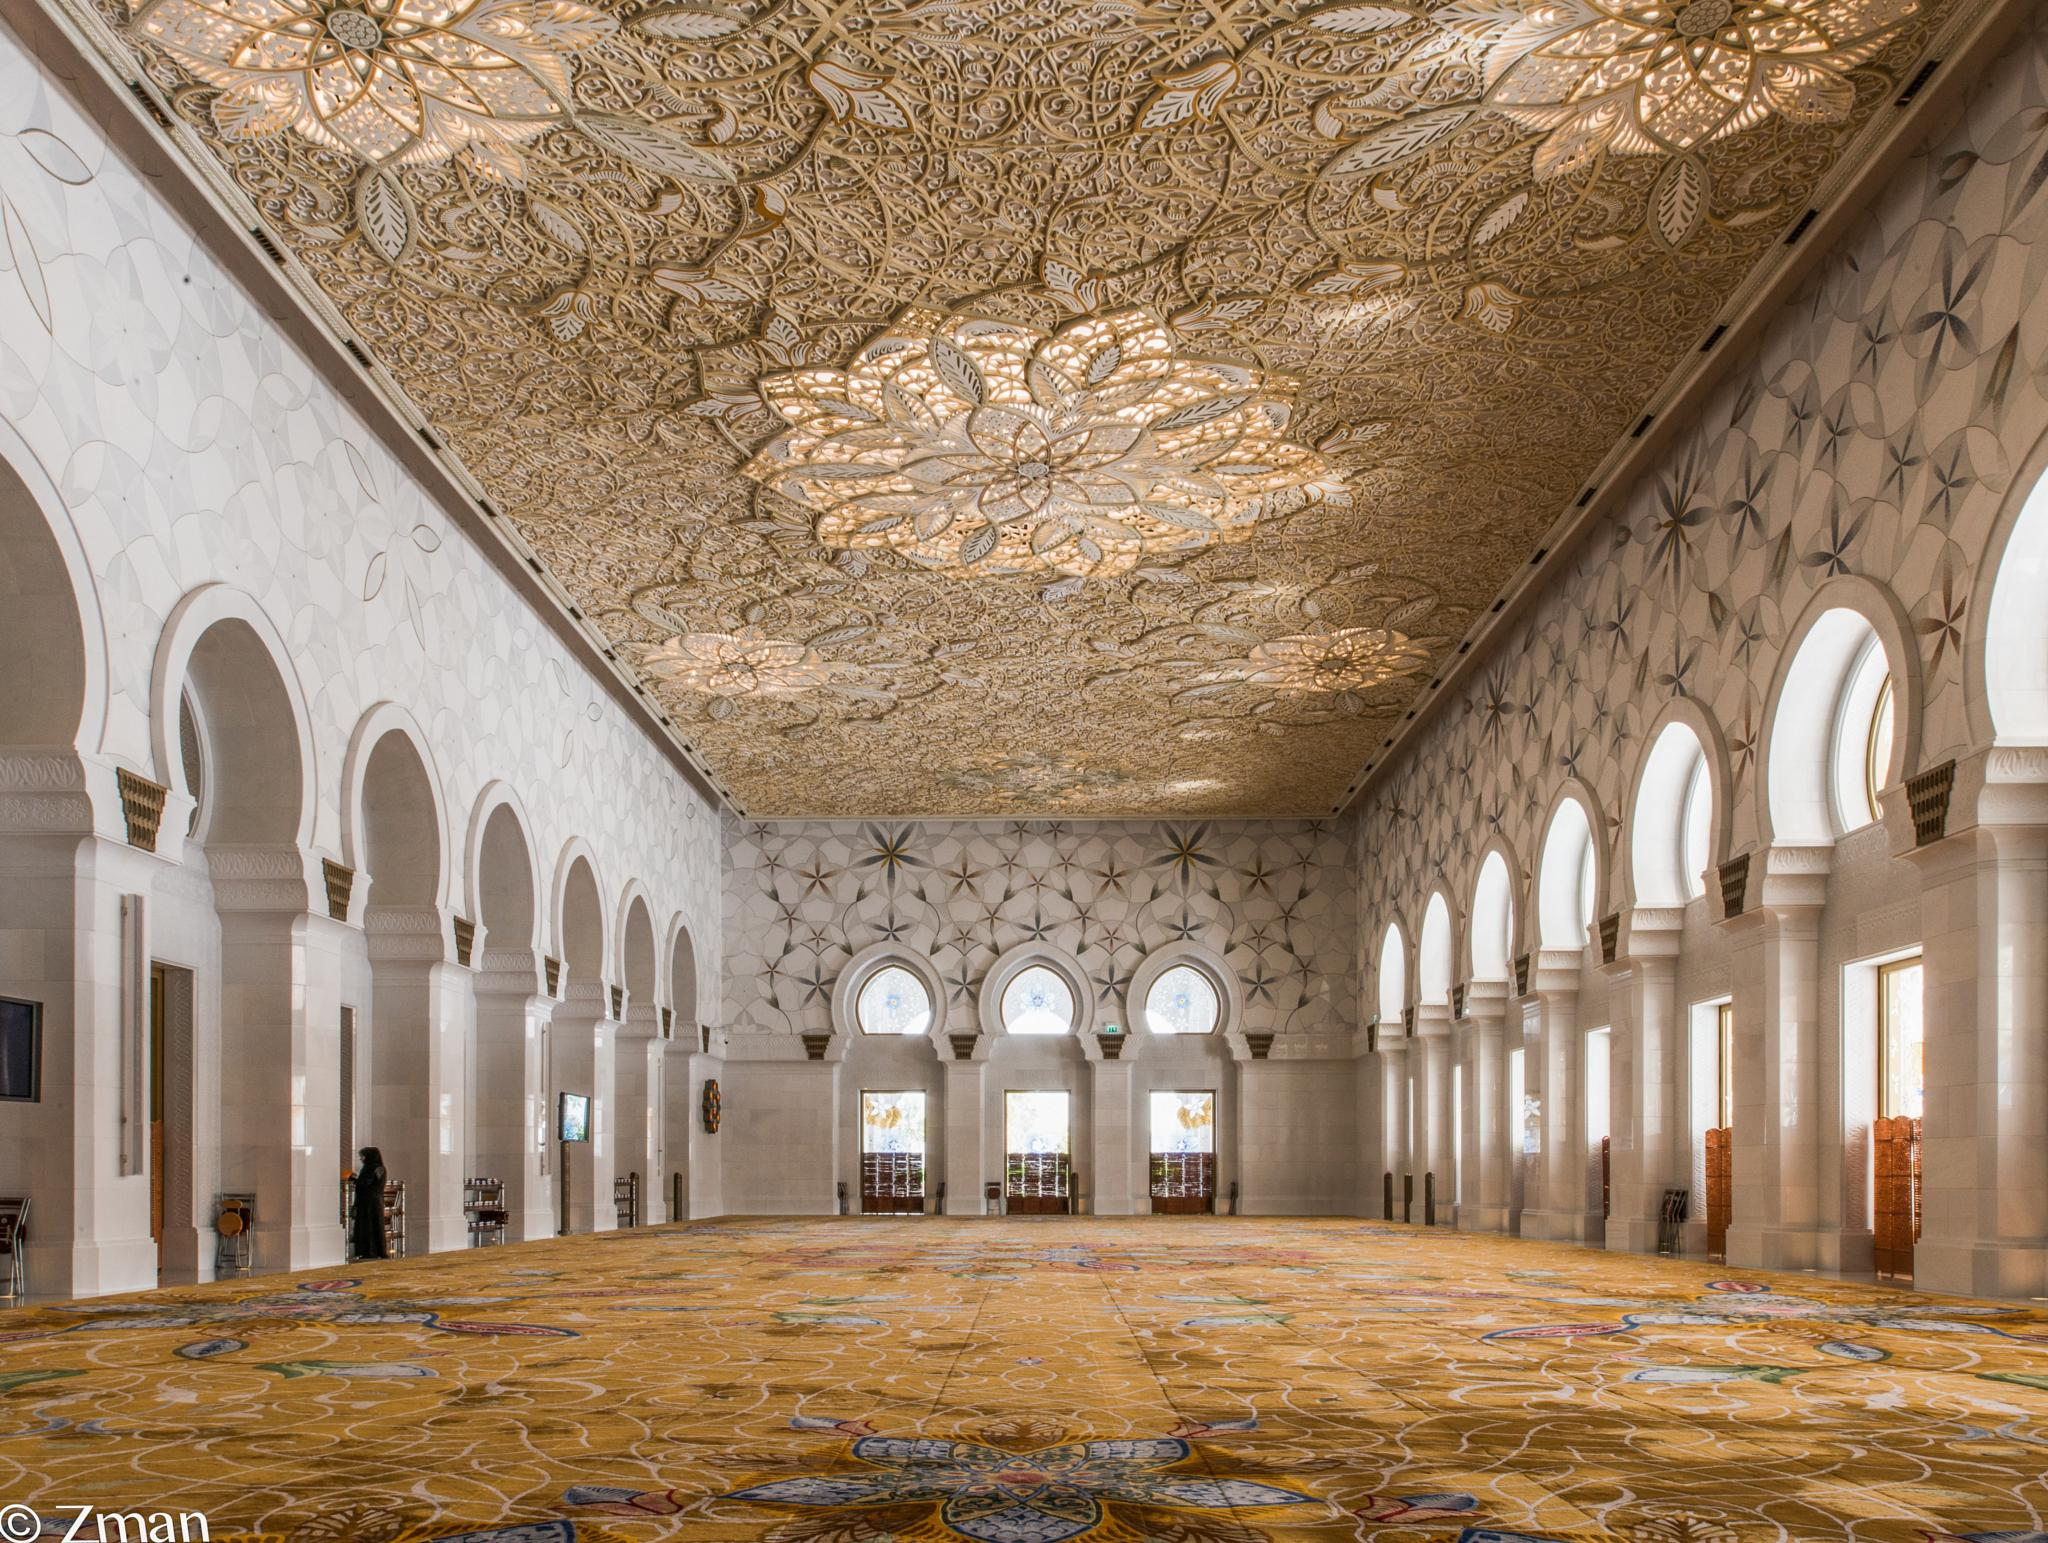 Women's Prayer Room of Shk Zayed Mosque by muhammad.nasser.963